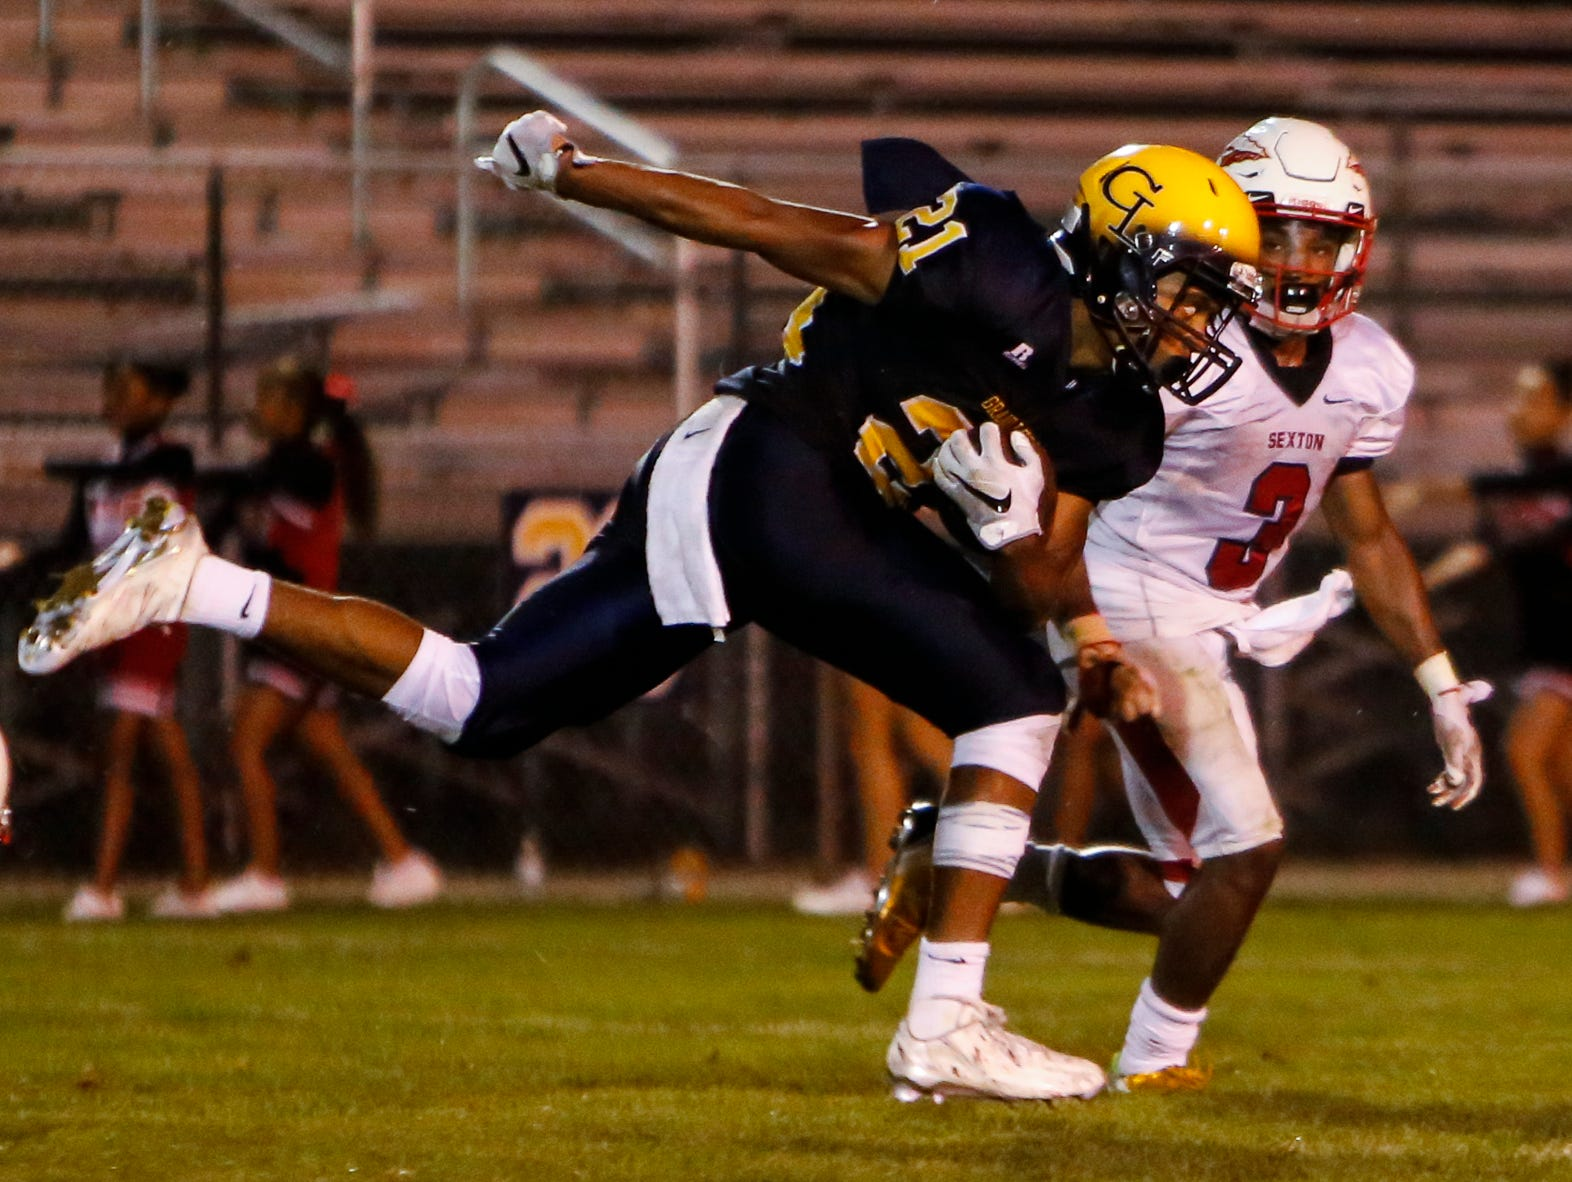 Antonio Rush and Grand Ledge can clinch the outright CAAC Blue title with a win over East Lansing next week.